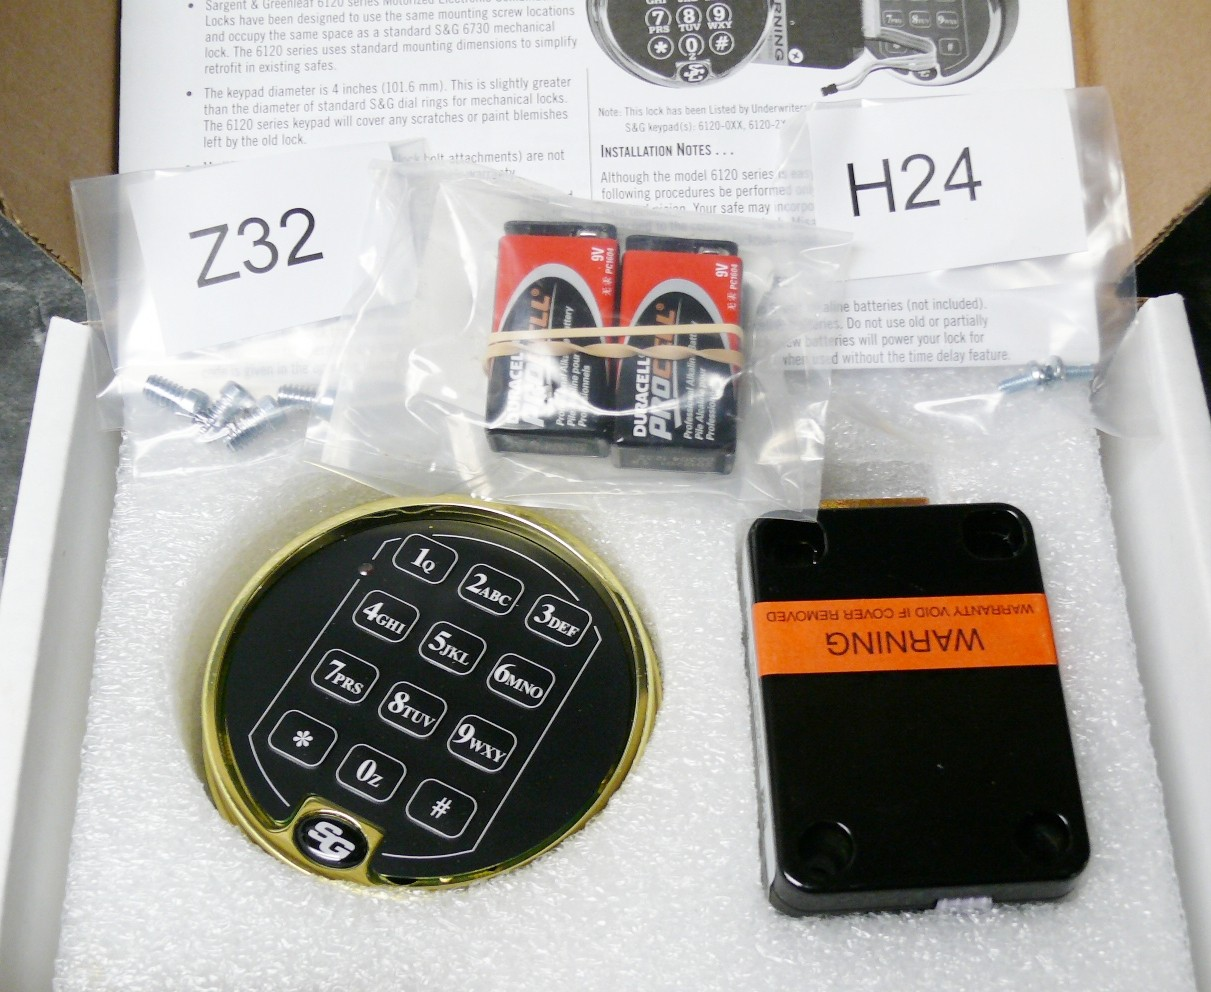 Electronic Keypad Lock Kit Right Left Handle Digital Coded Hqs1436 Simple Combination Circuit S G 6120 Brass Safe Combo Gun